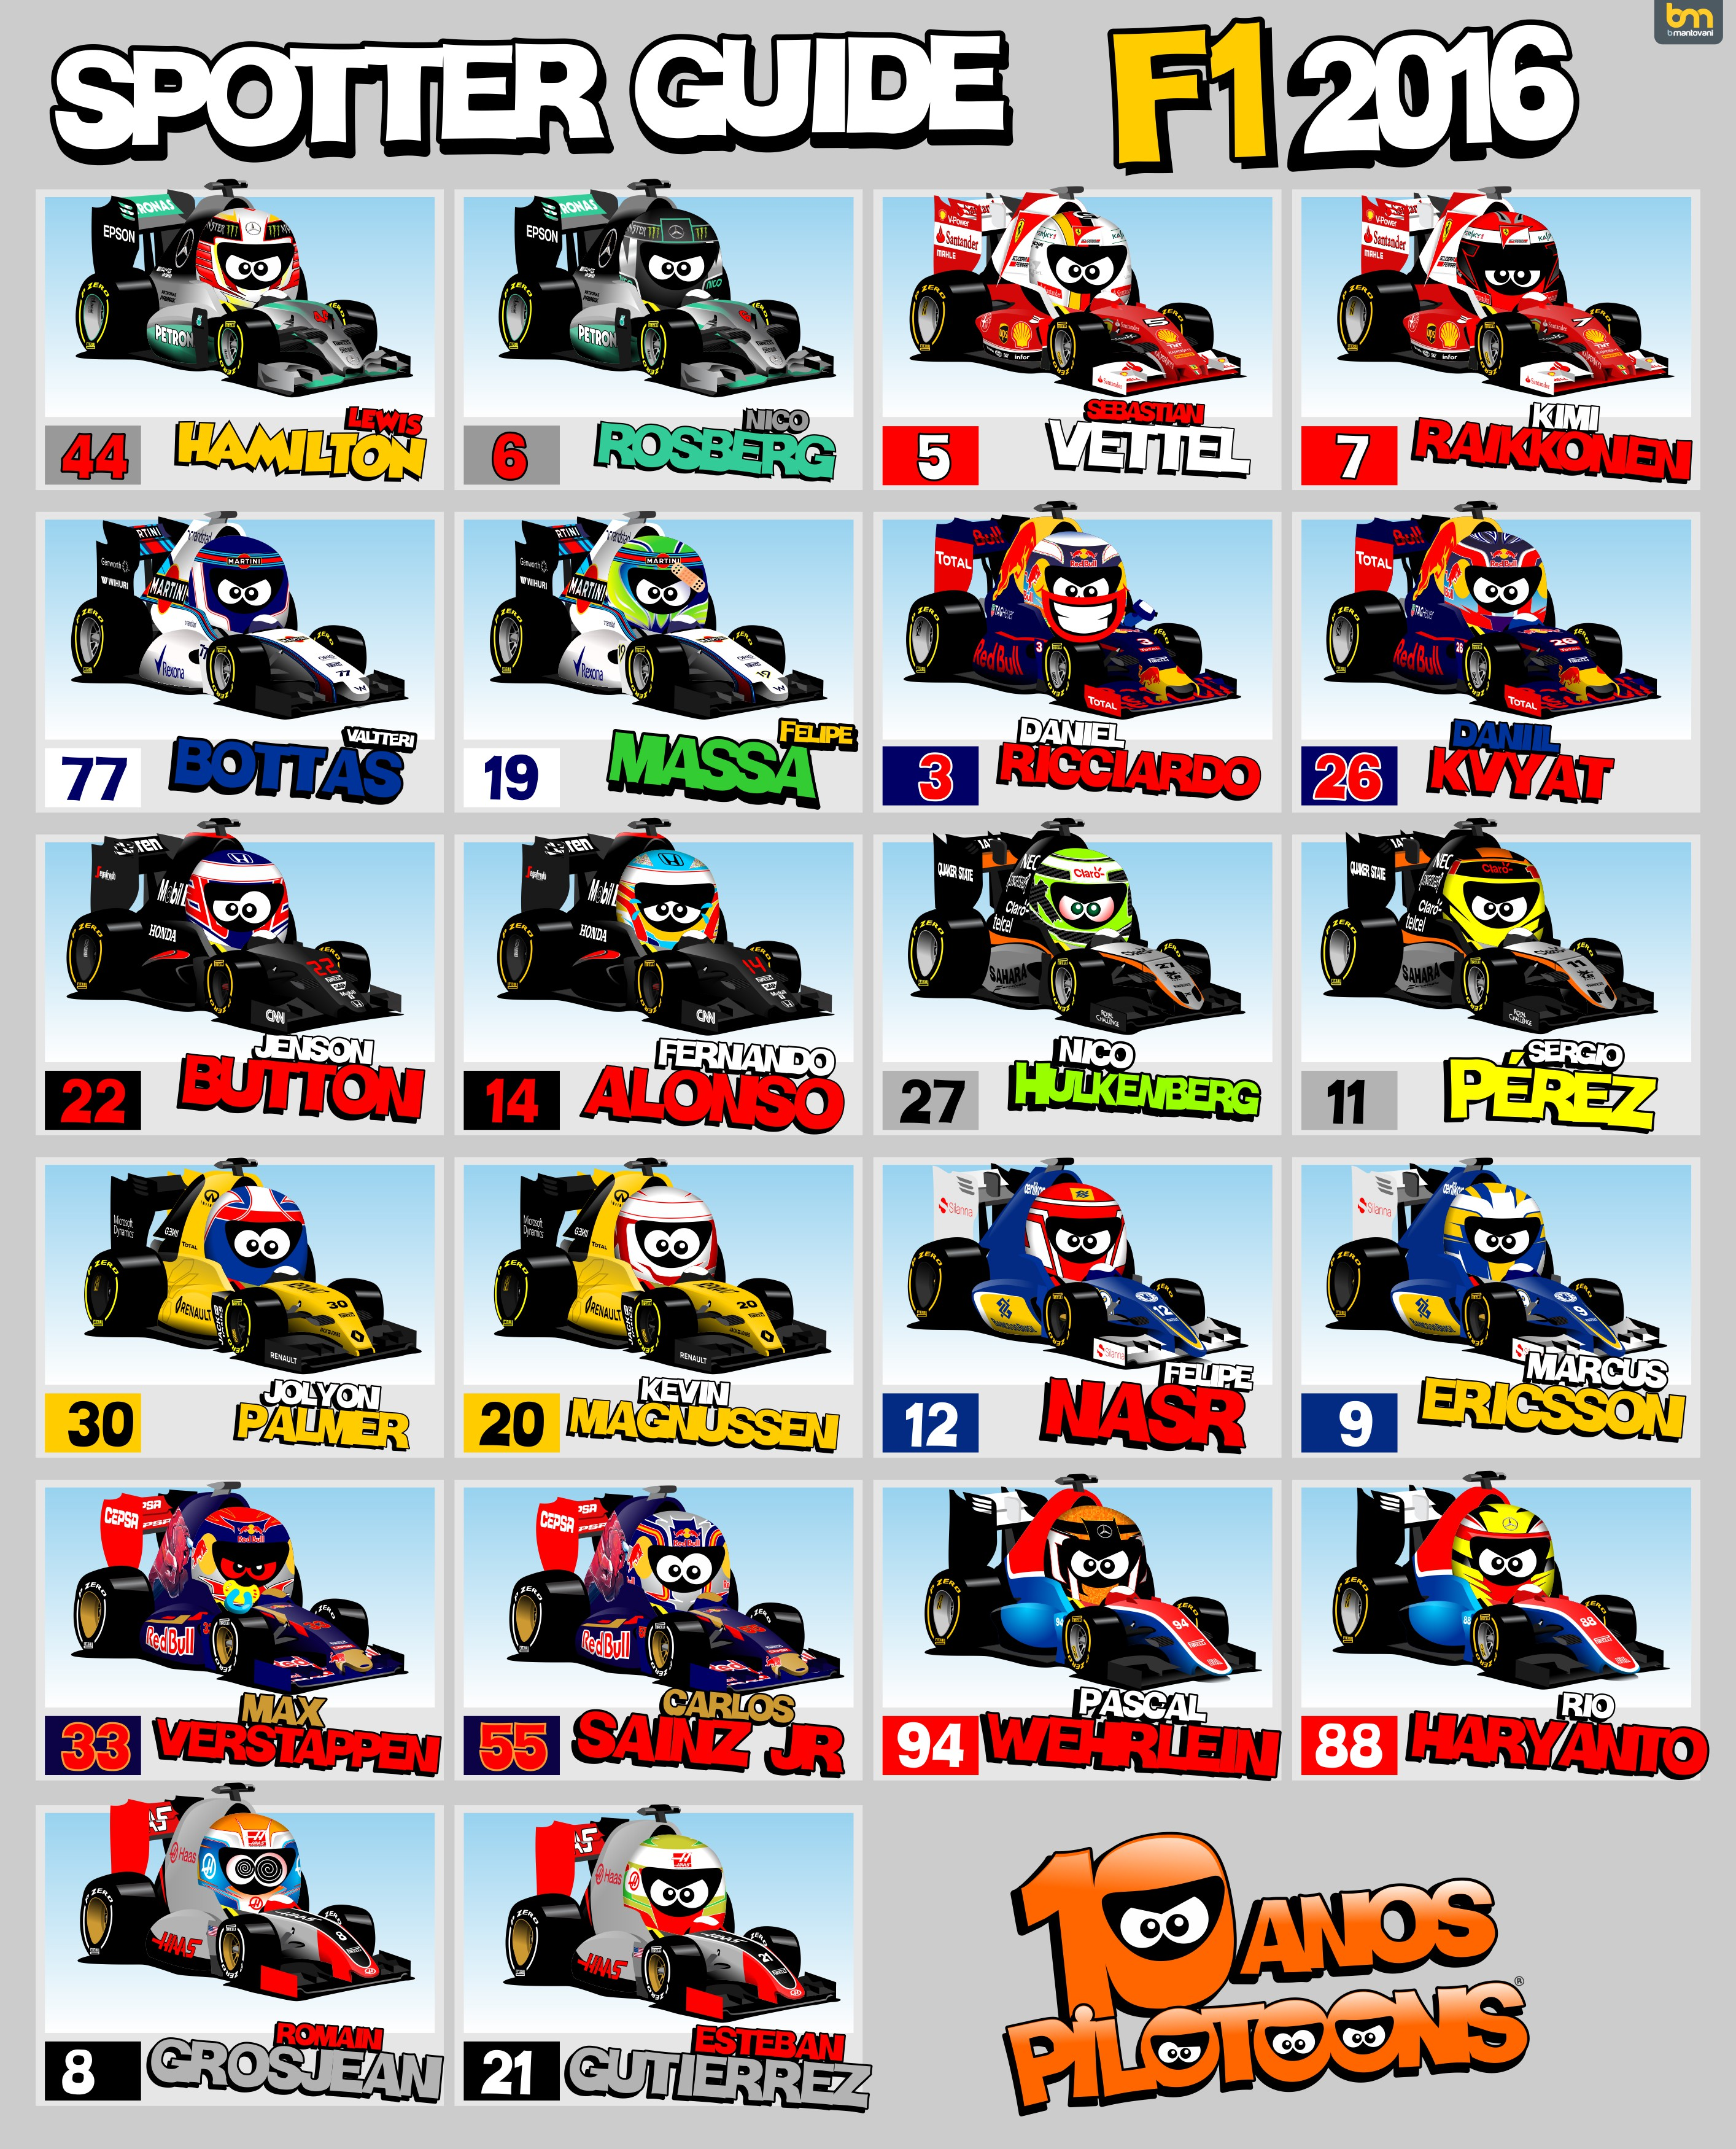 spotter_guide_f1_2016bb